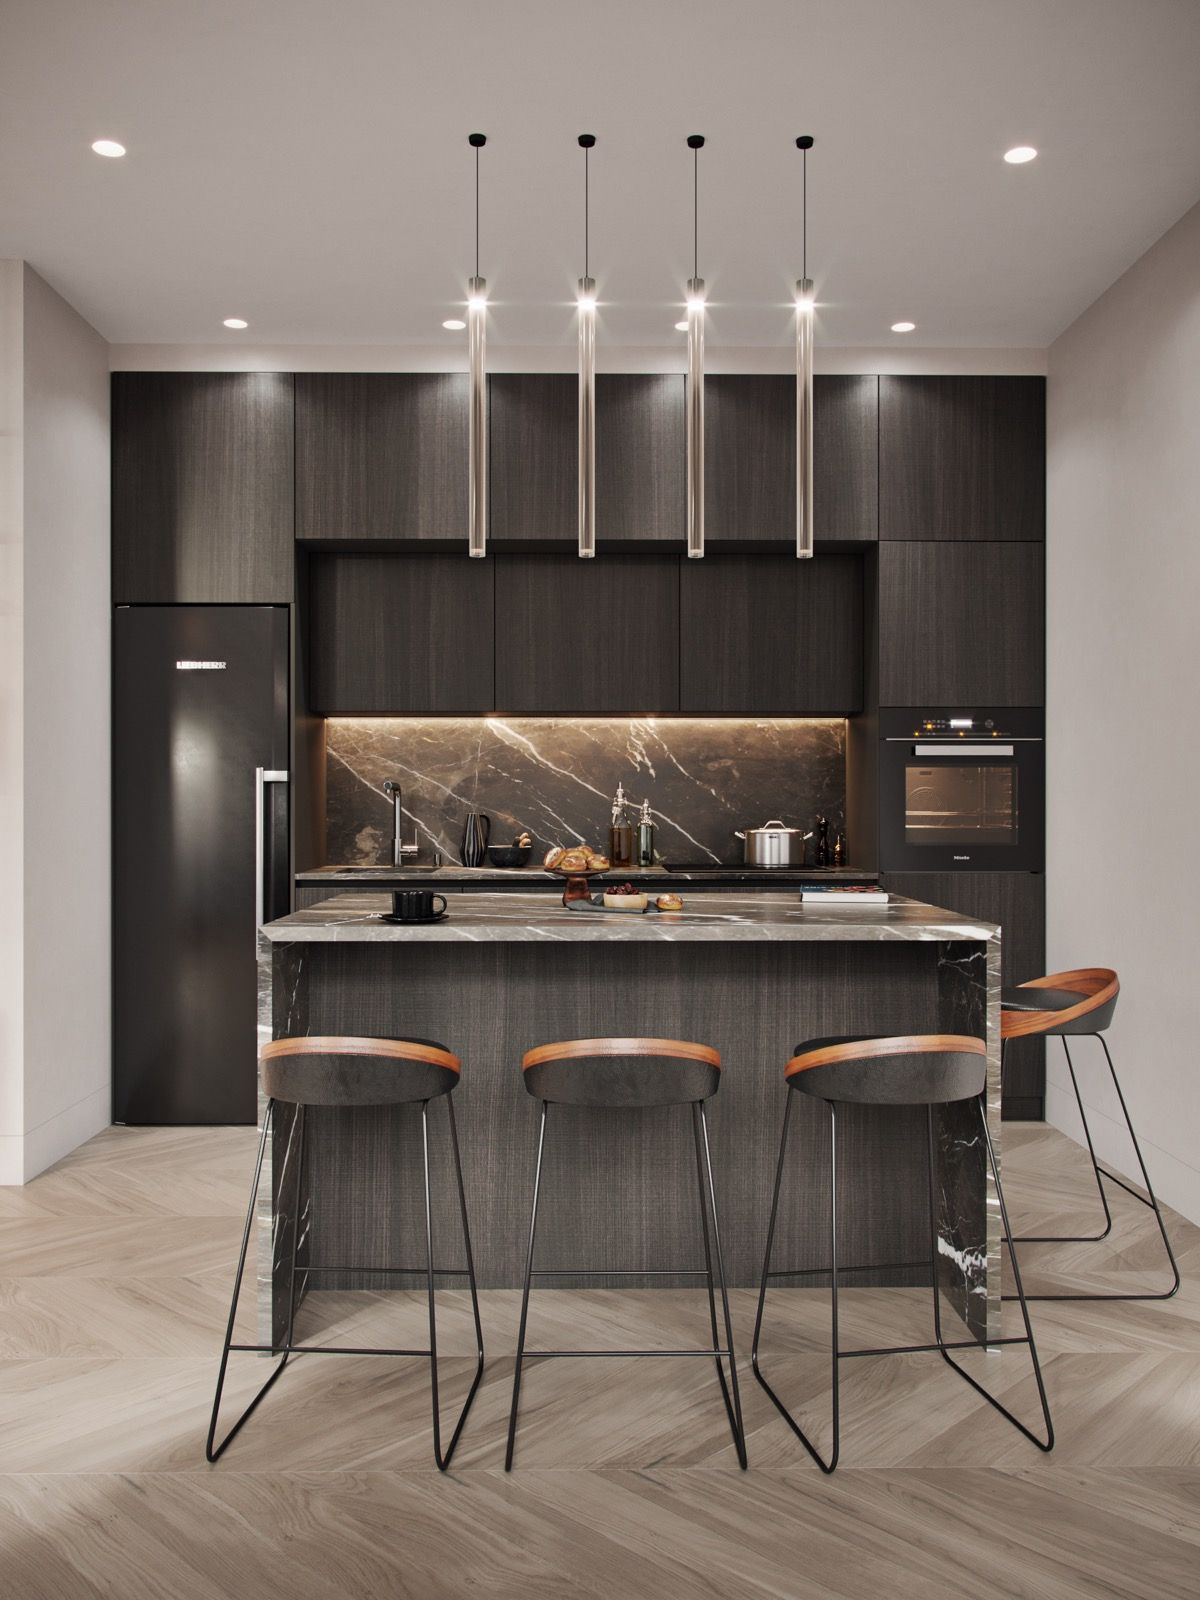 51 Luxury Kitchens And Tips To Help You Design And Accessorize